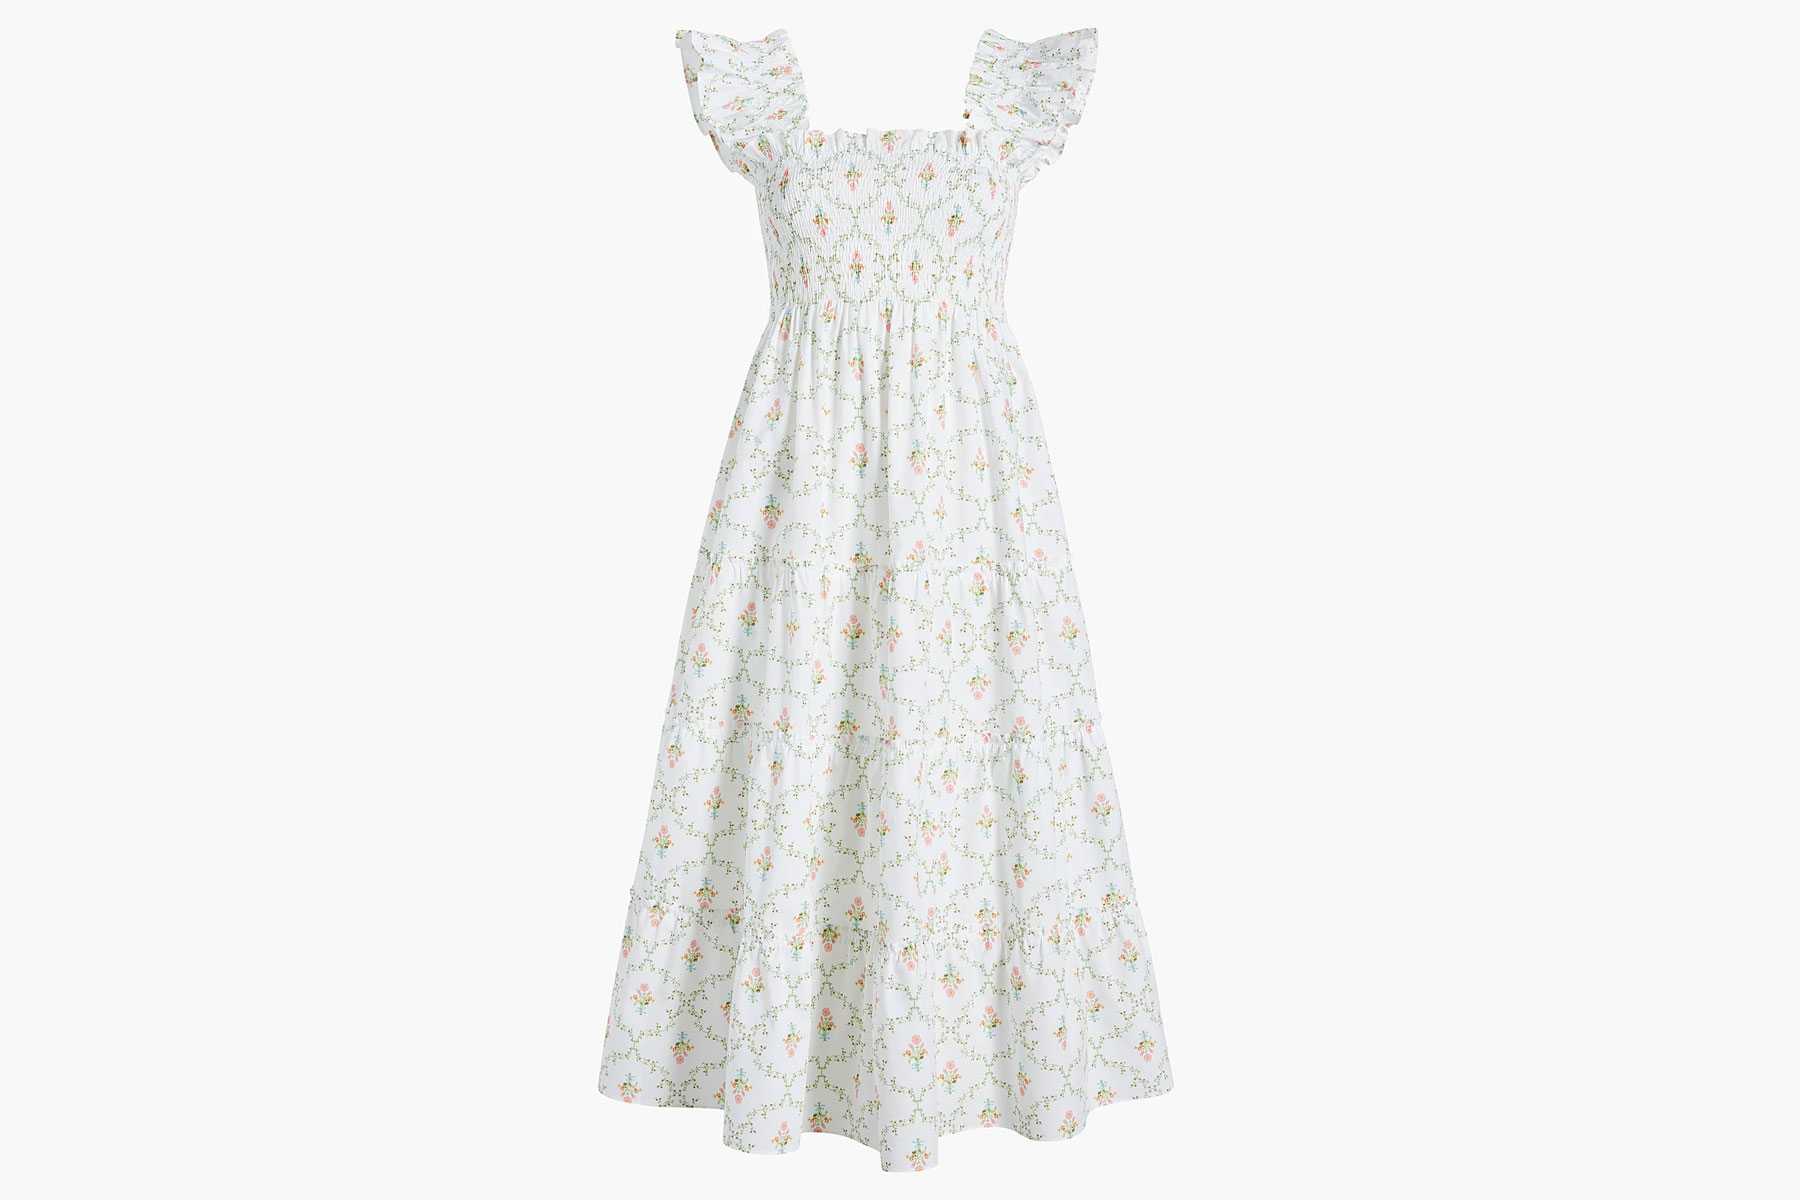 White and floral pattern maxi dress